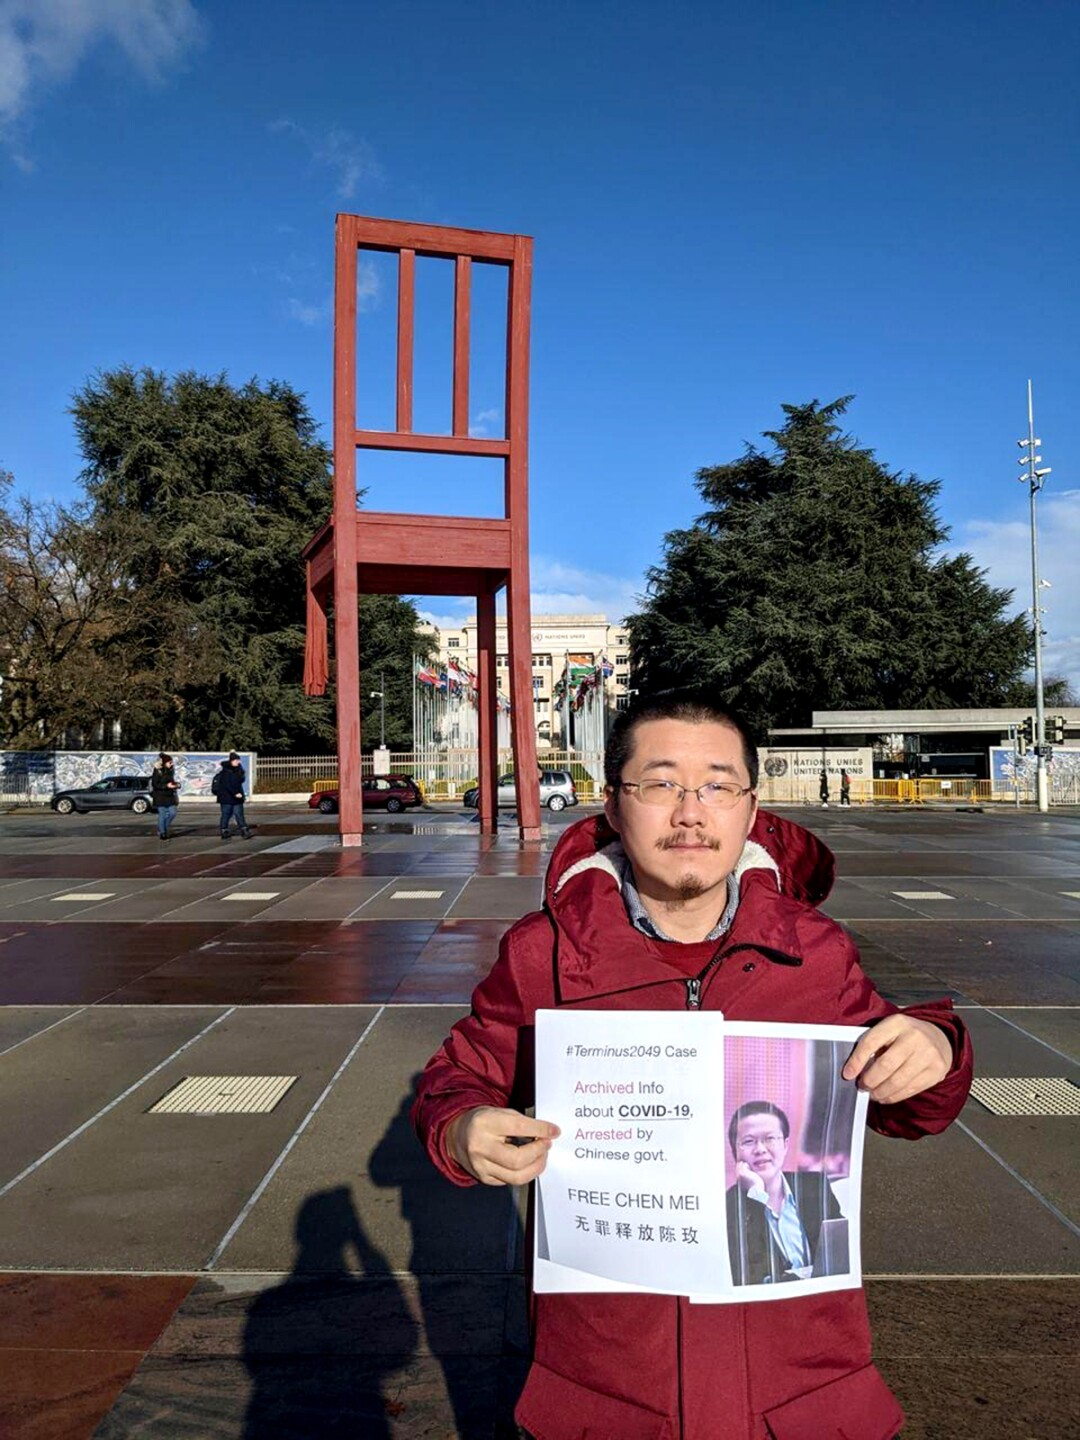 A man standing in front of a red sculpture of a chair holds a printed image of a person and a sign that reads Free Chen Mei